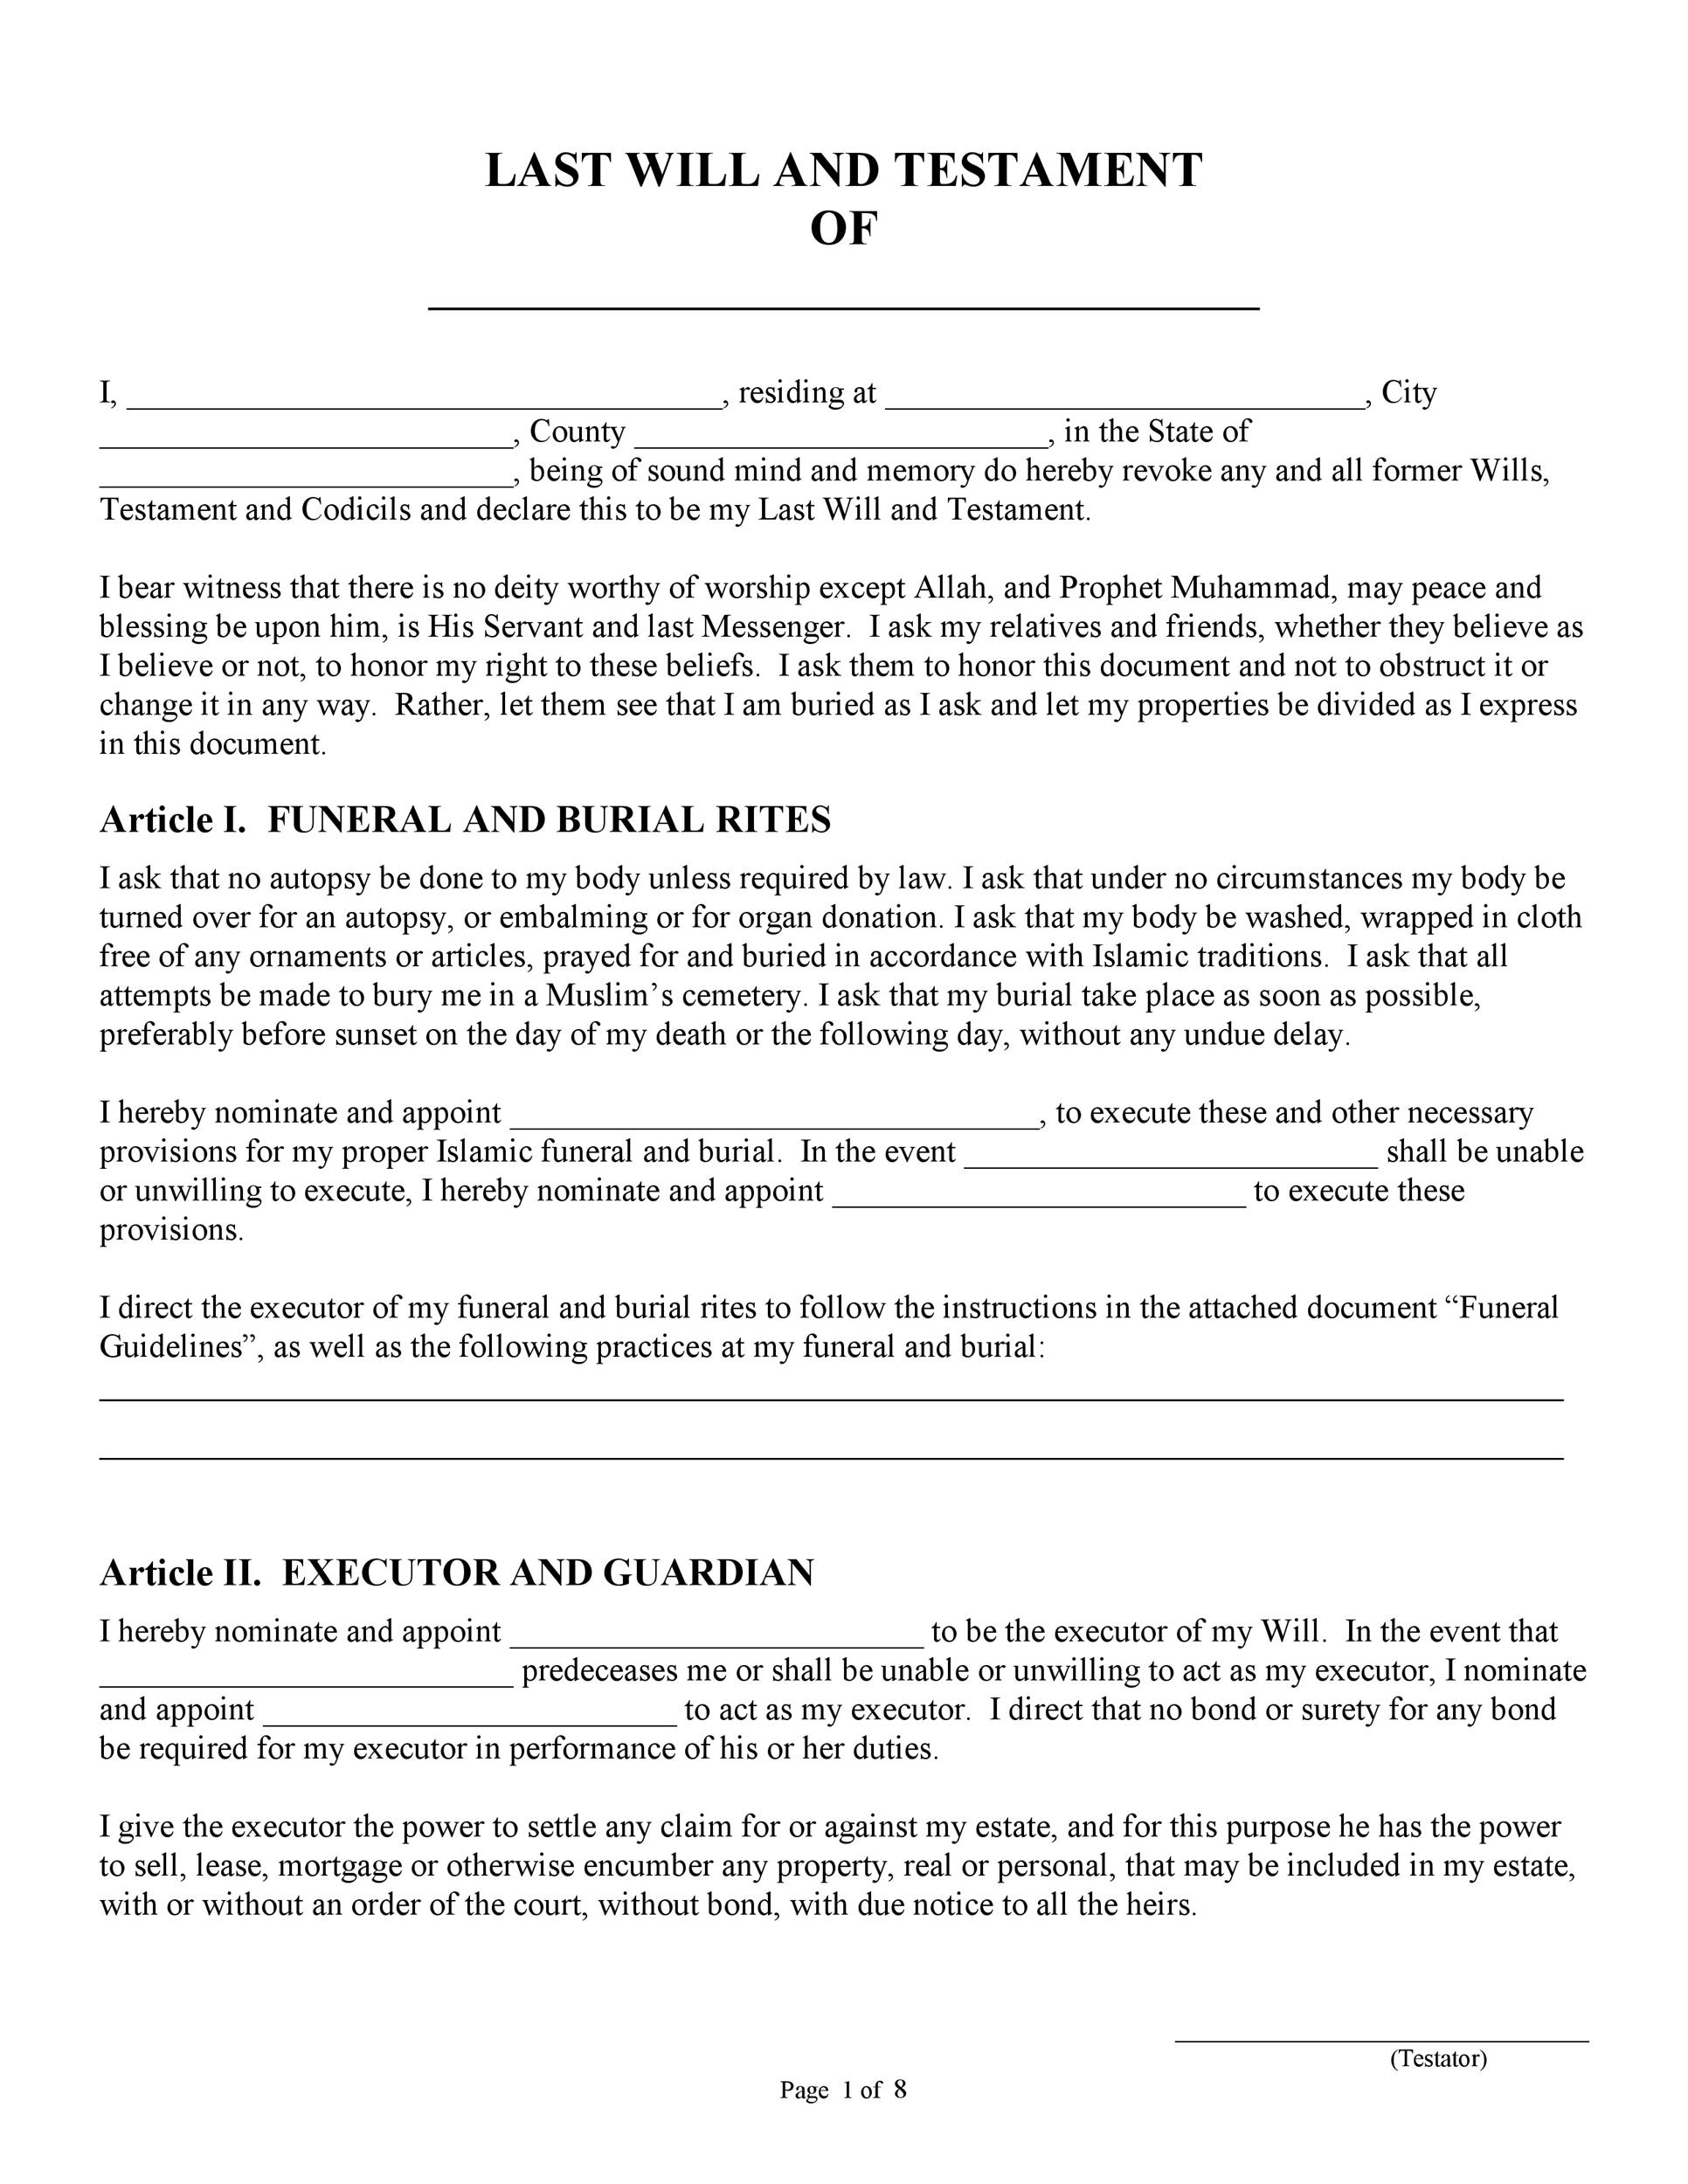 39 Last Will and Testament Forms  Templates - Template Lab